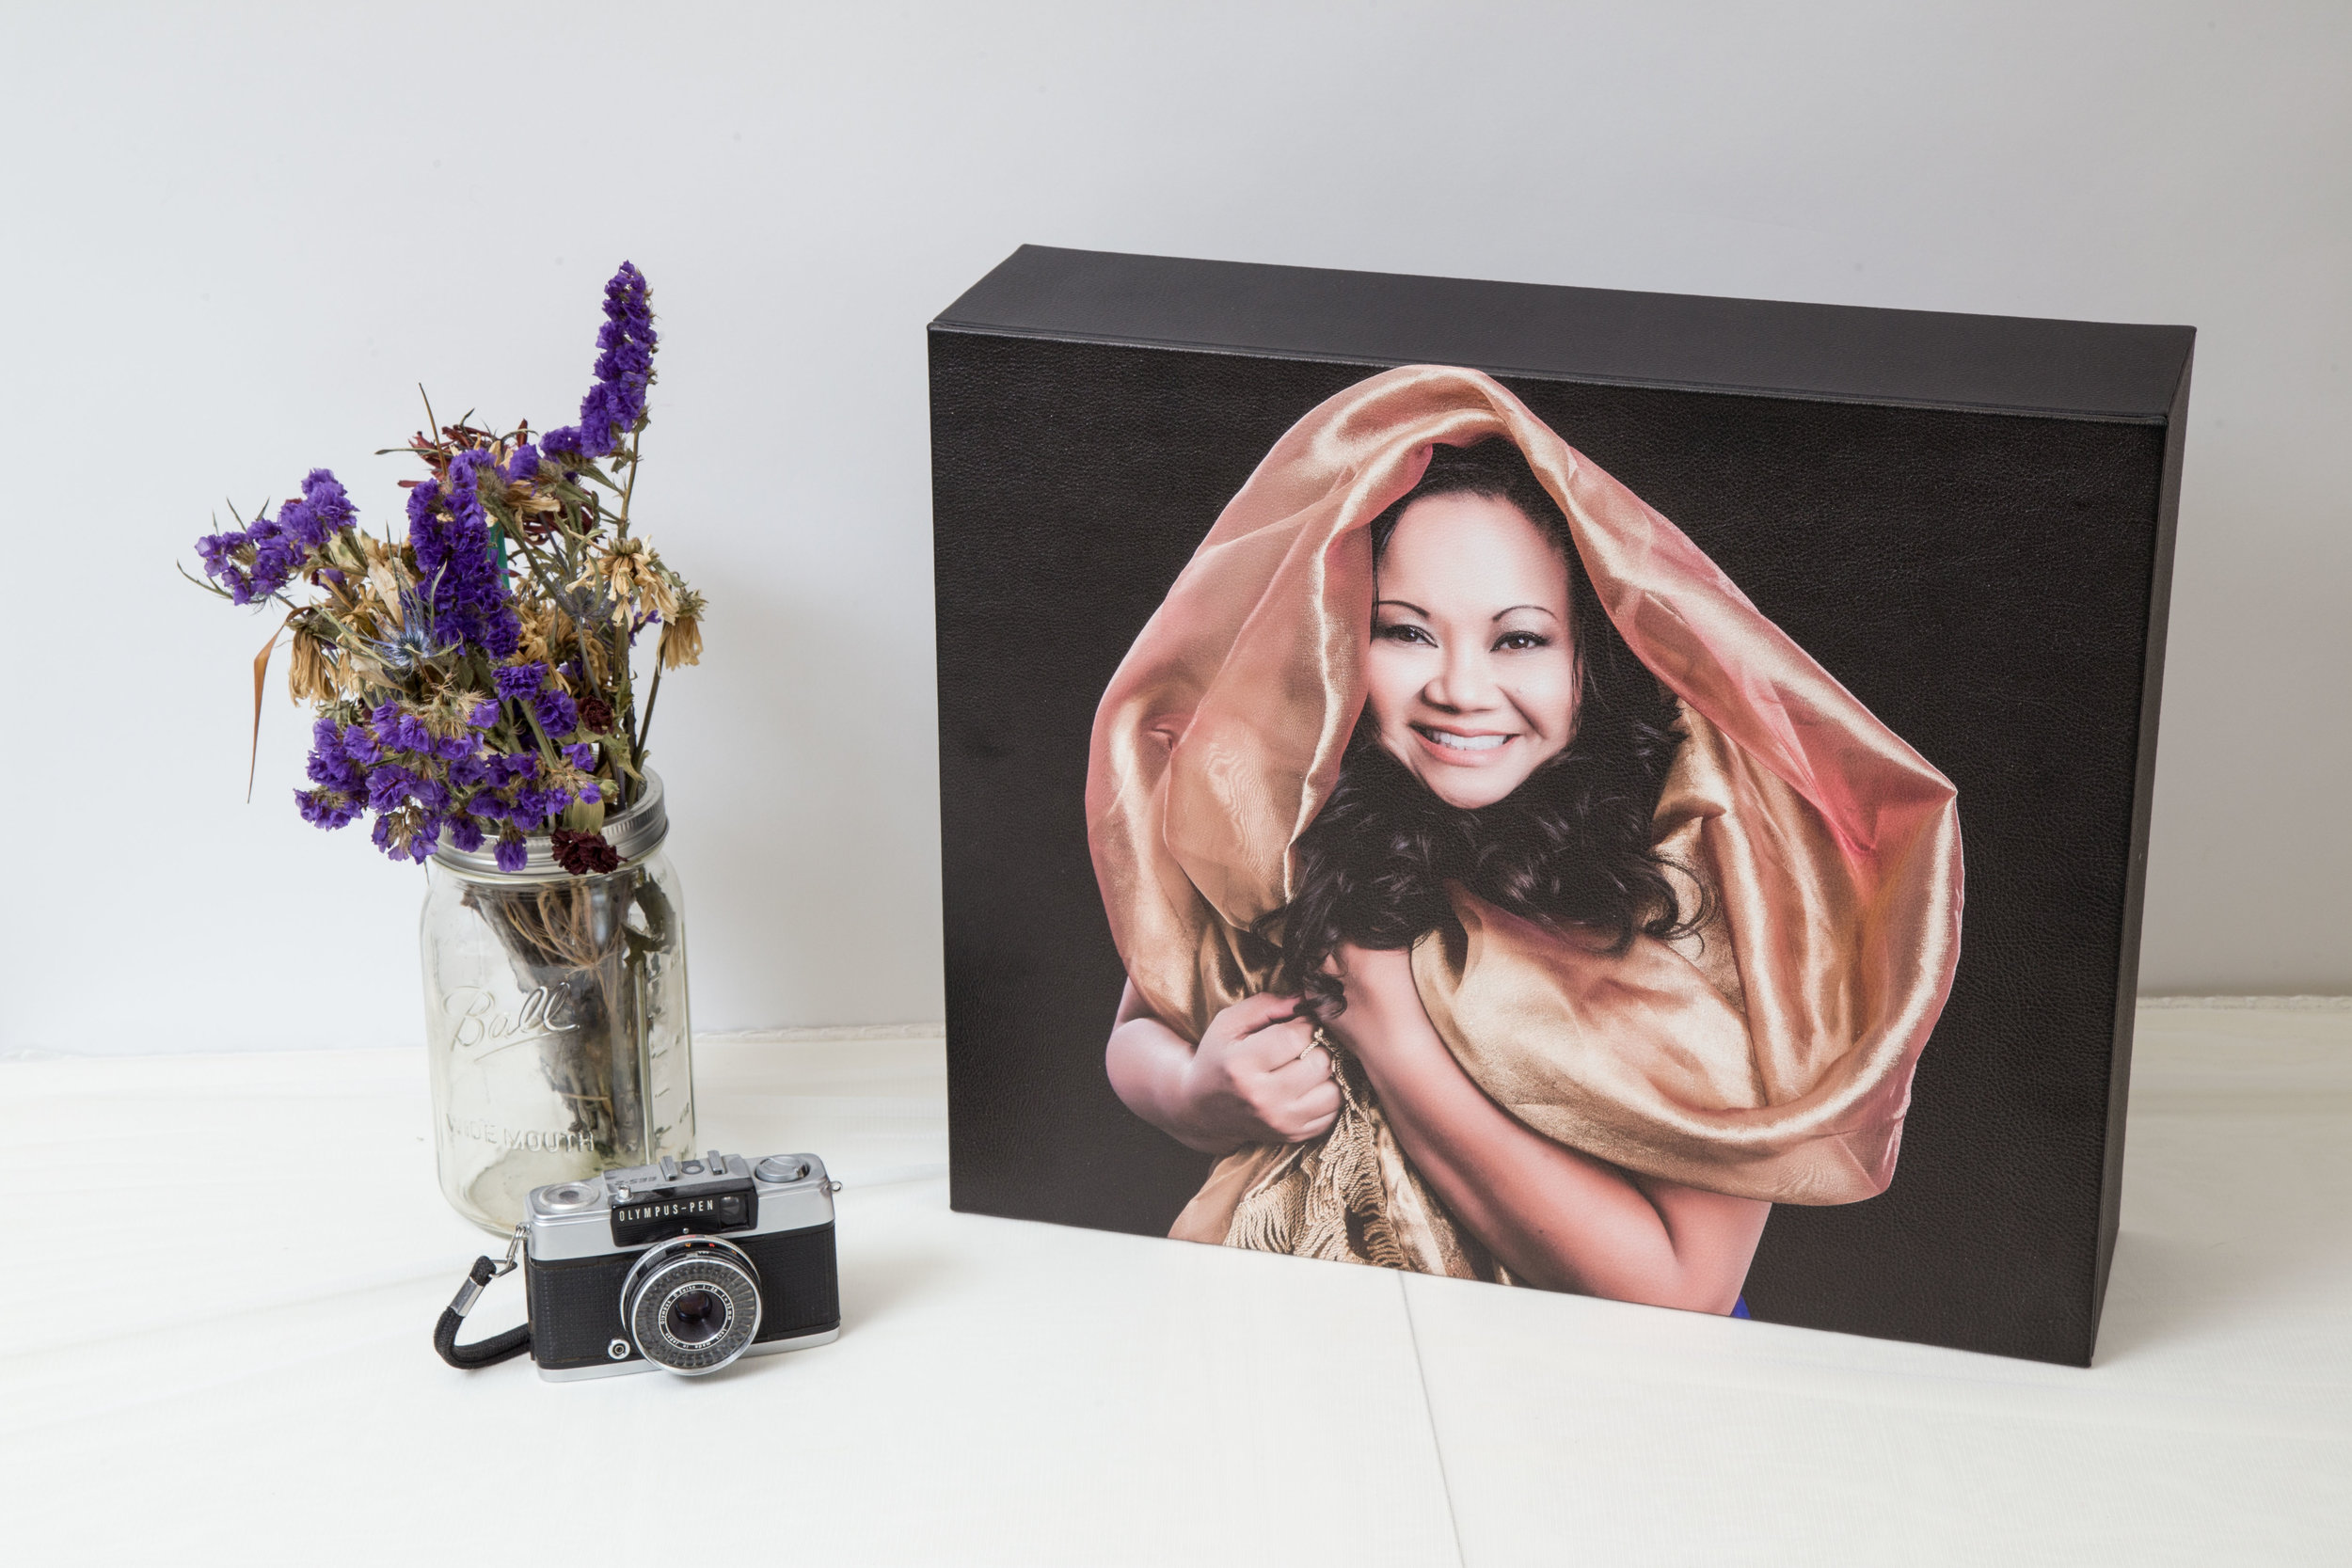 Delivery - The most incredible moment, when you will see your portraits ready to be enjoyed and displayed at home.